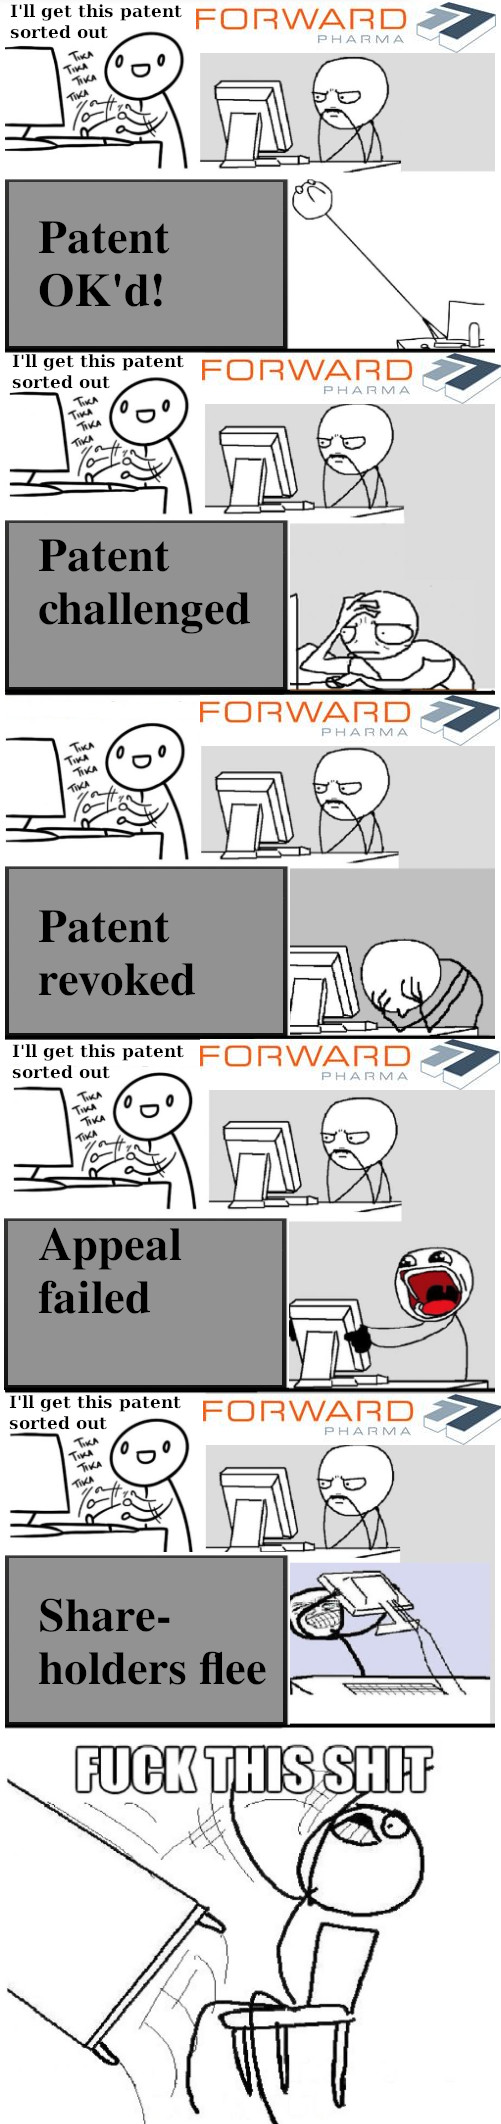 I'll get this patent sorted out; Patent OK'd! Patent challenged; Patent revoked; Appeal failed; Share-holders flee